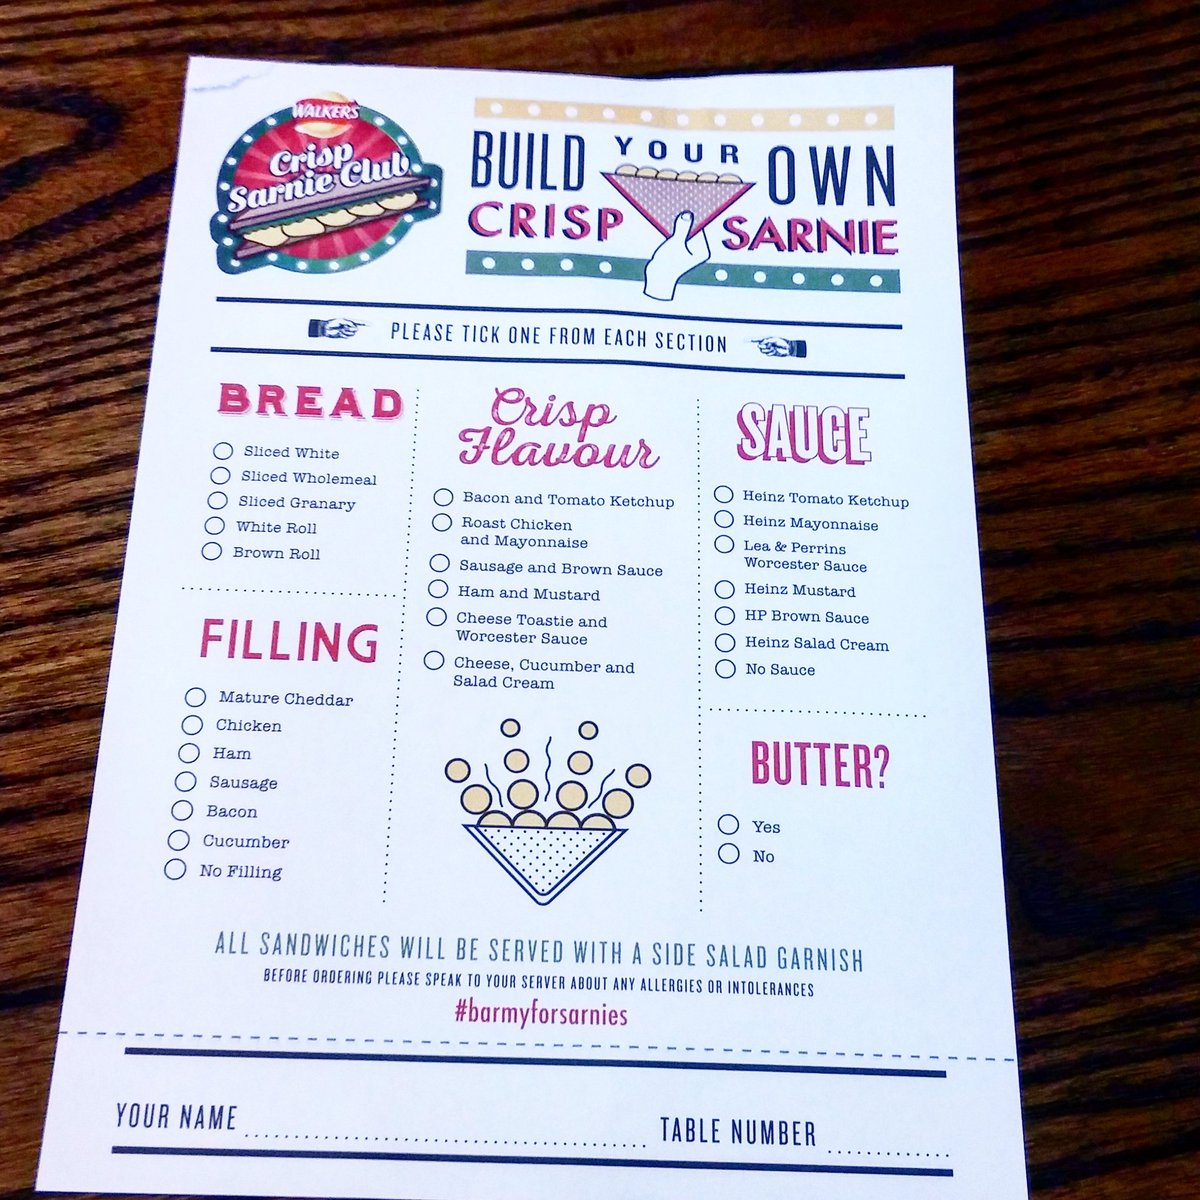 Walkers_crisp_sandwich_pop-up_cafe_menu_Tooley_Street_SE1